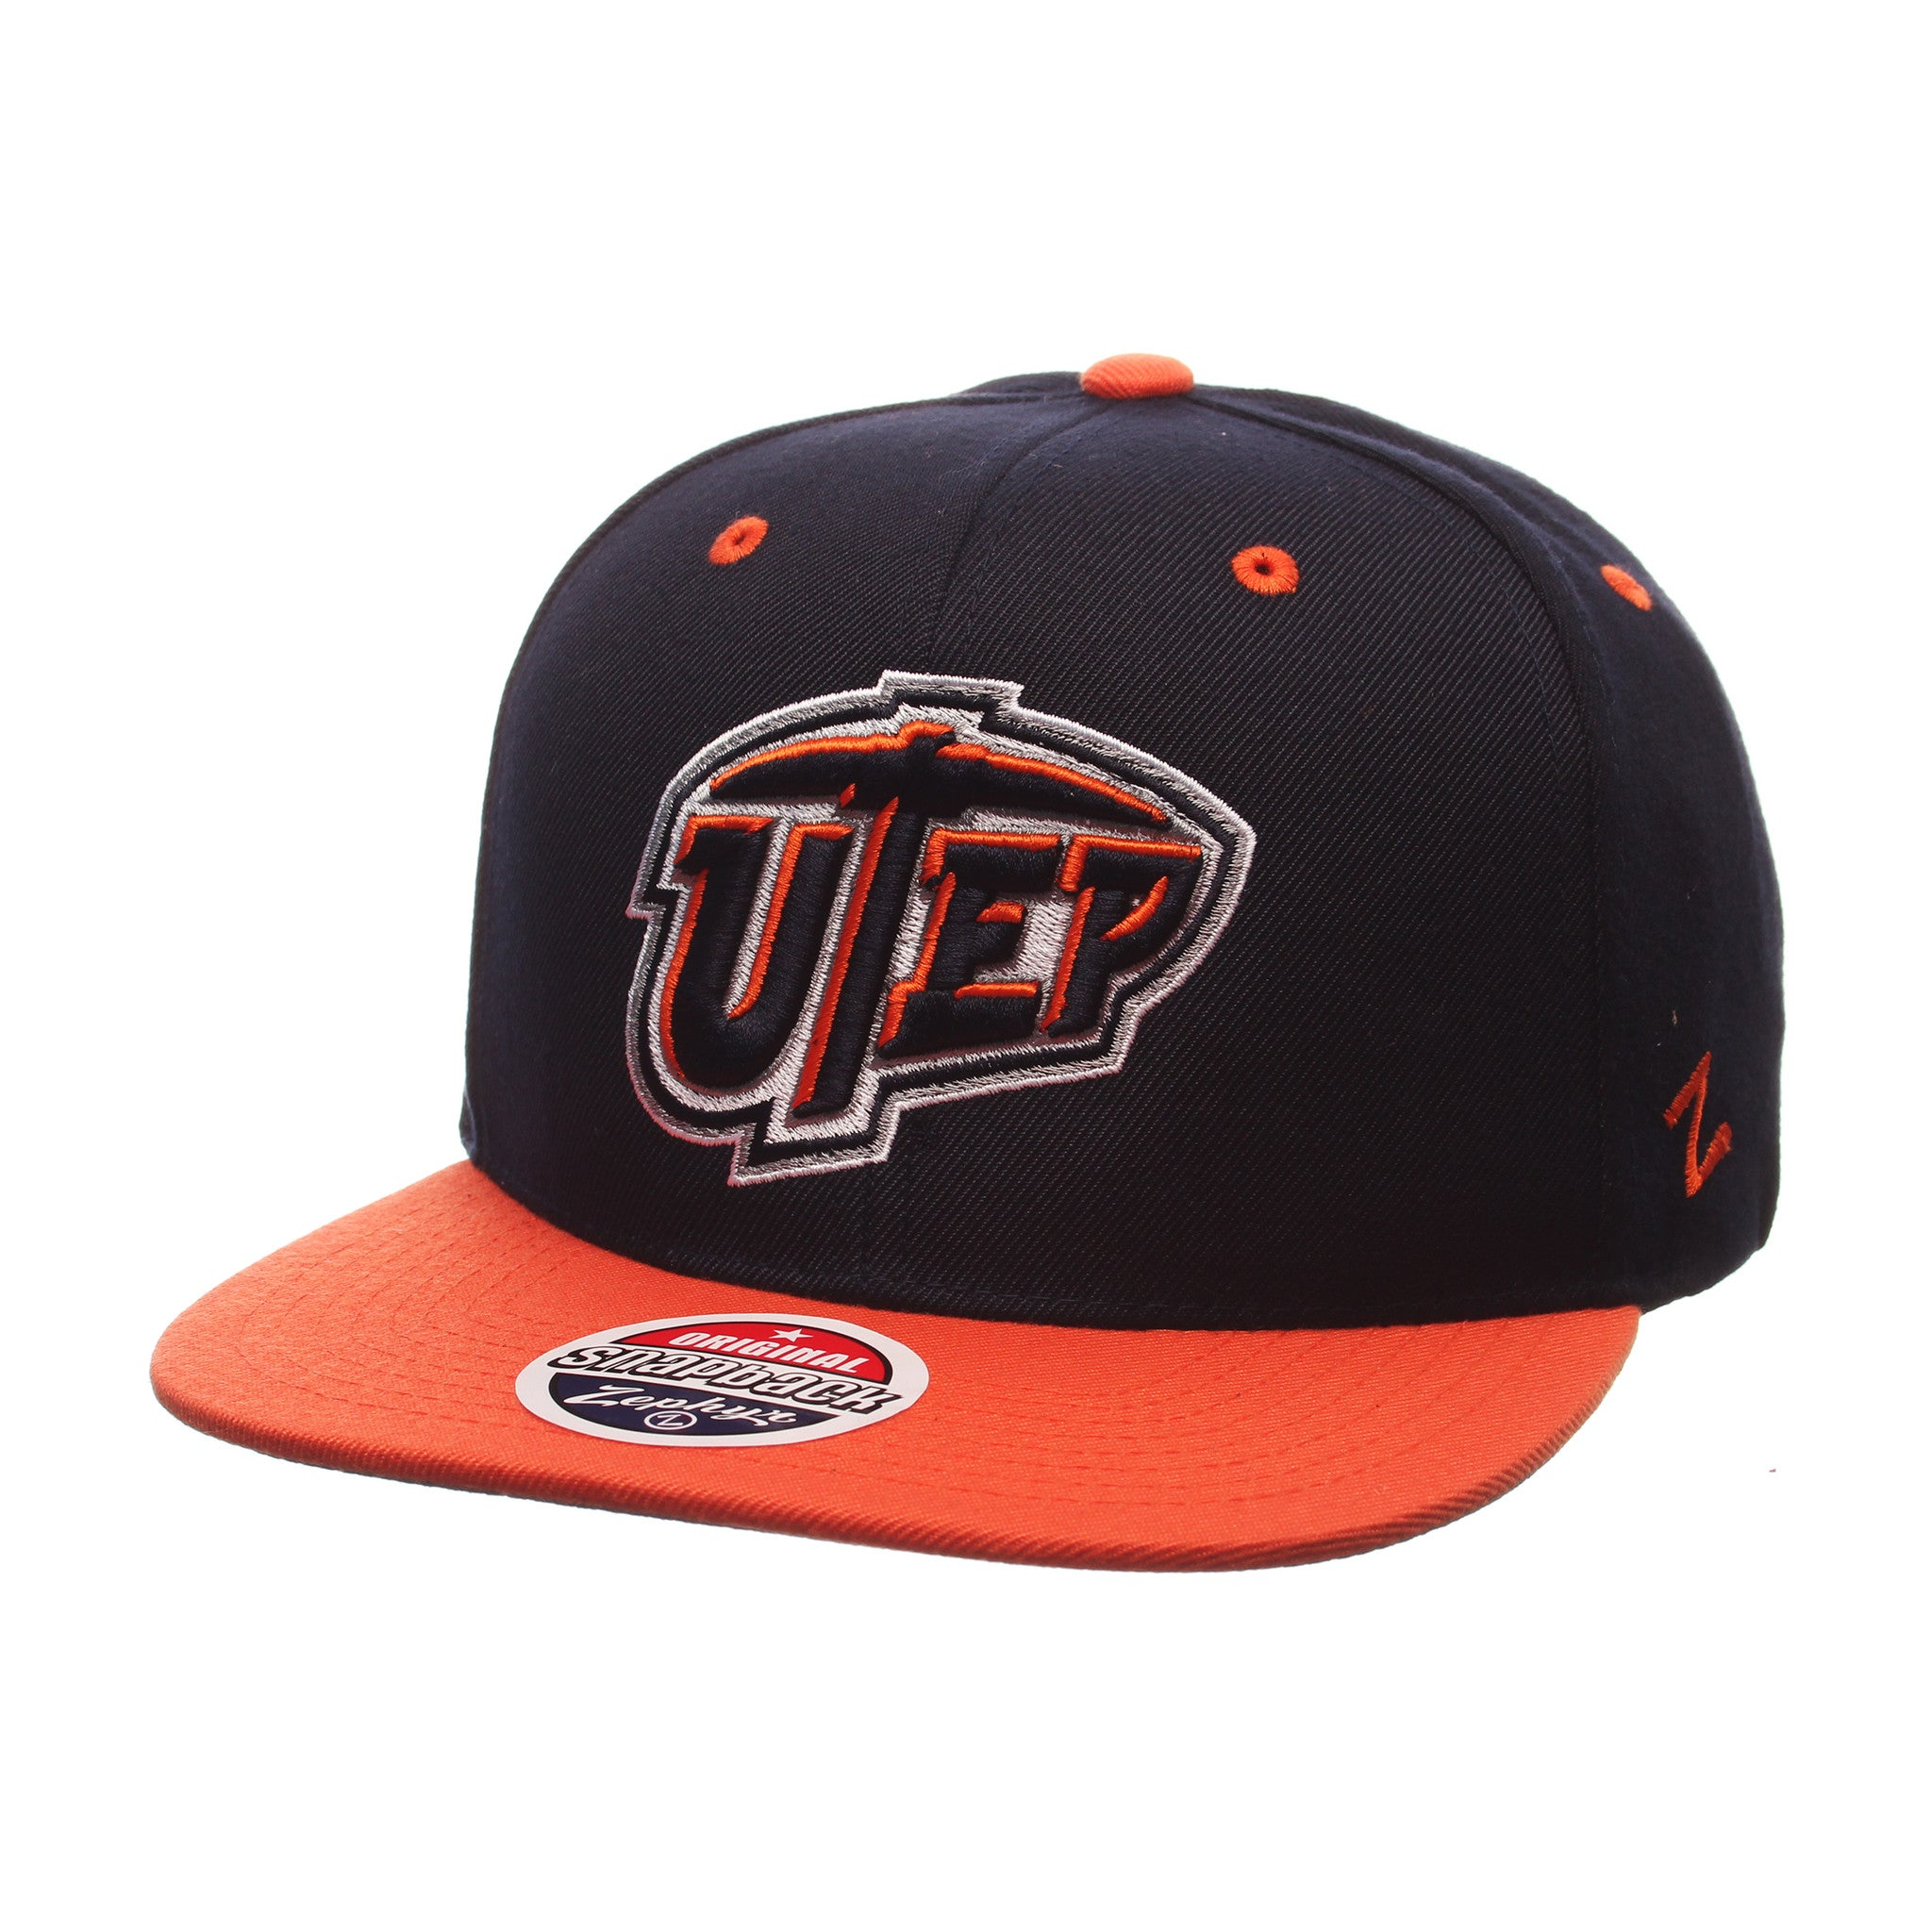 Texas (El Paso) Z11 32/5 (High) (UTEP) Navy Dark Zwool Adjustable hats by Zephyr